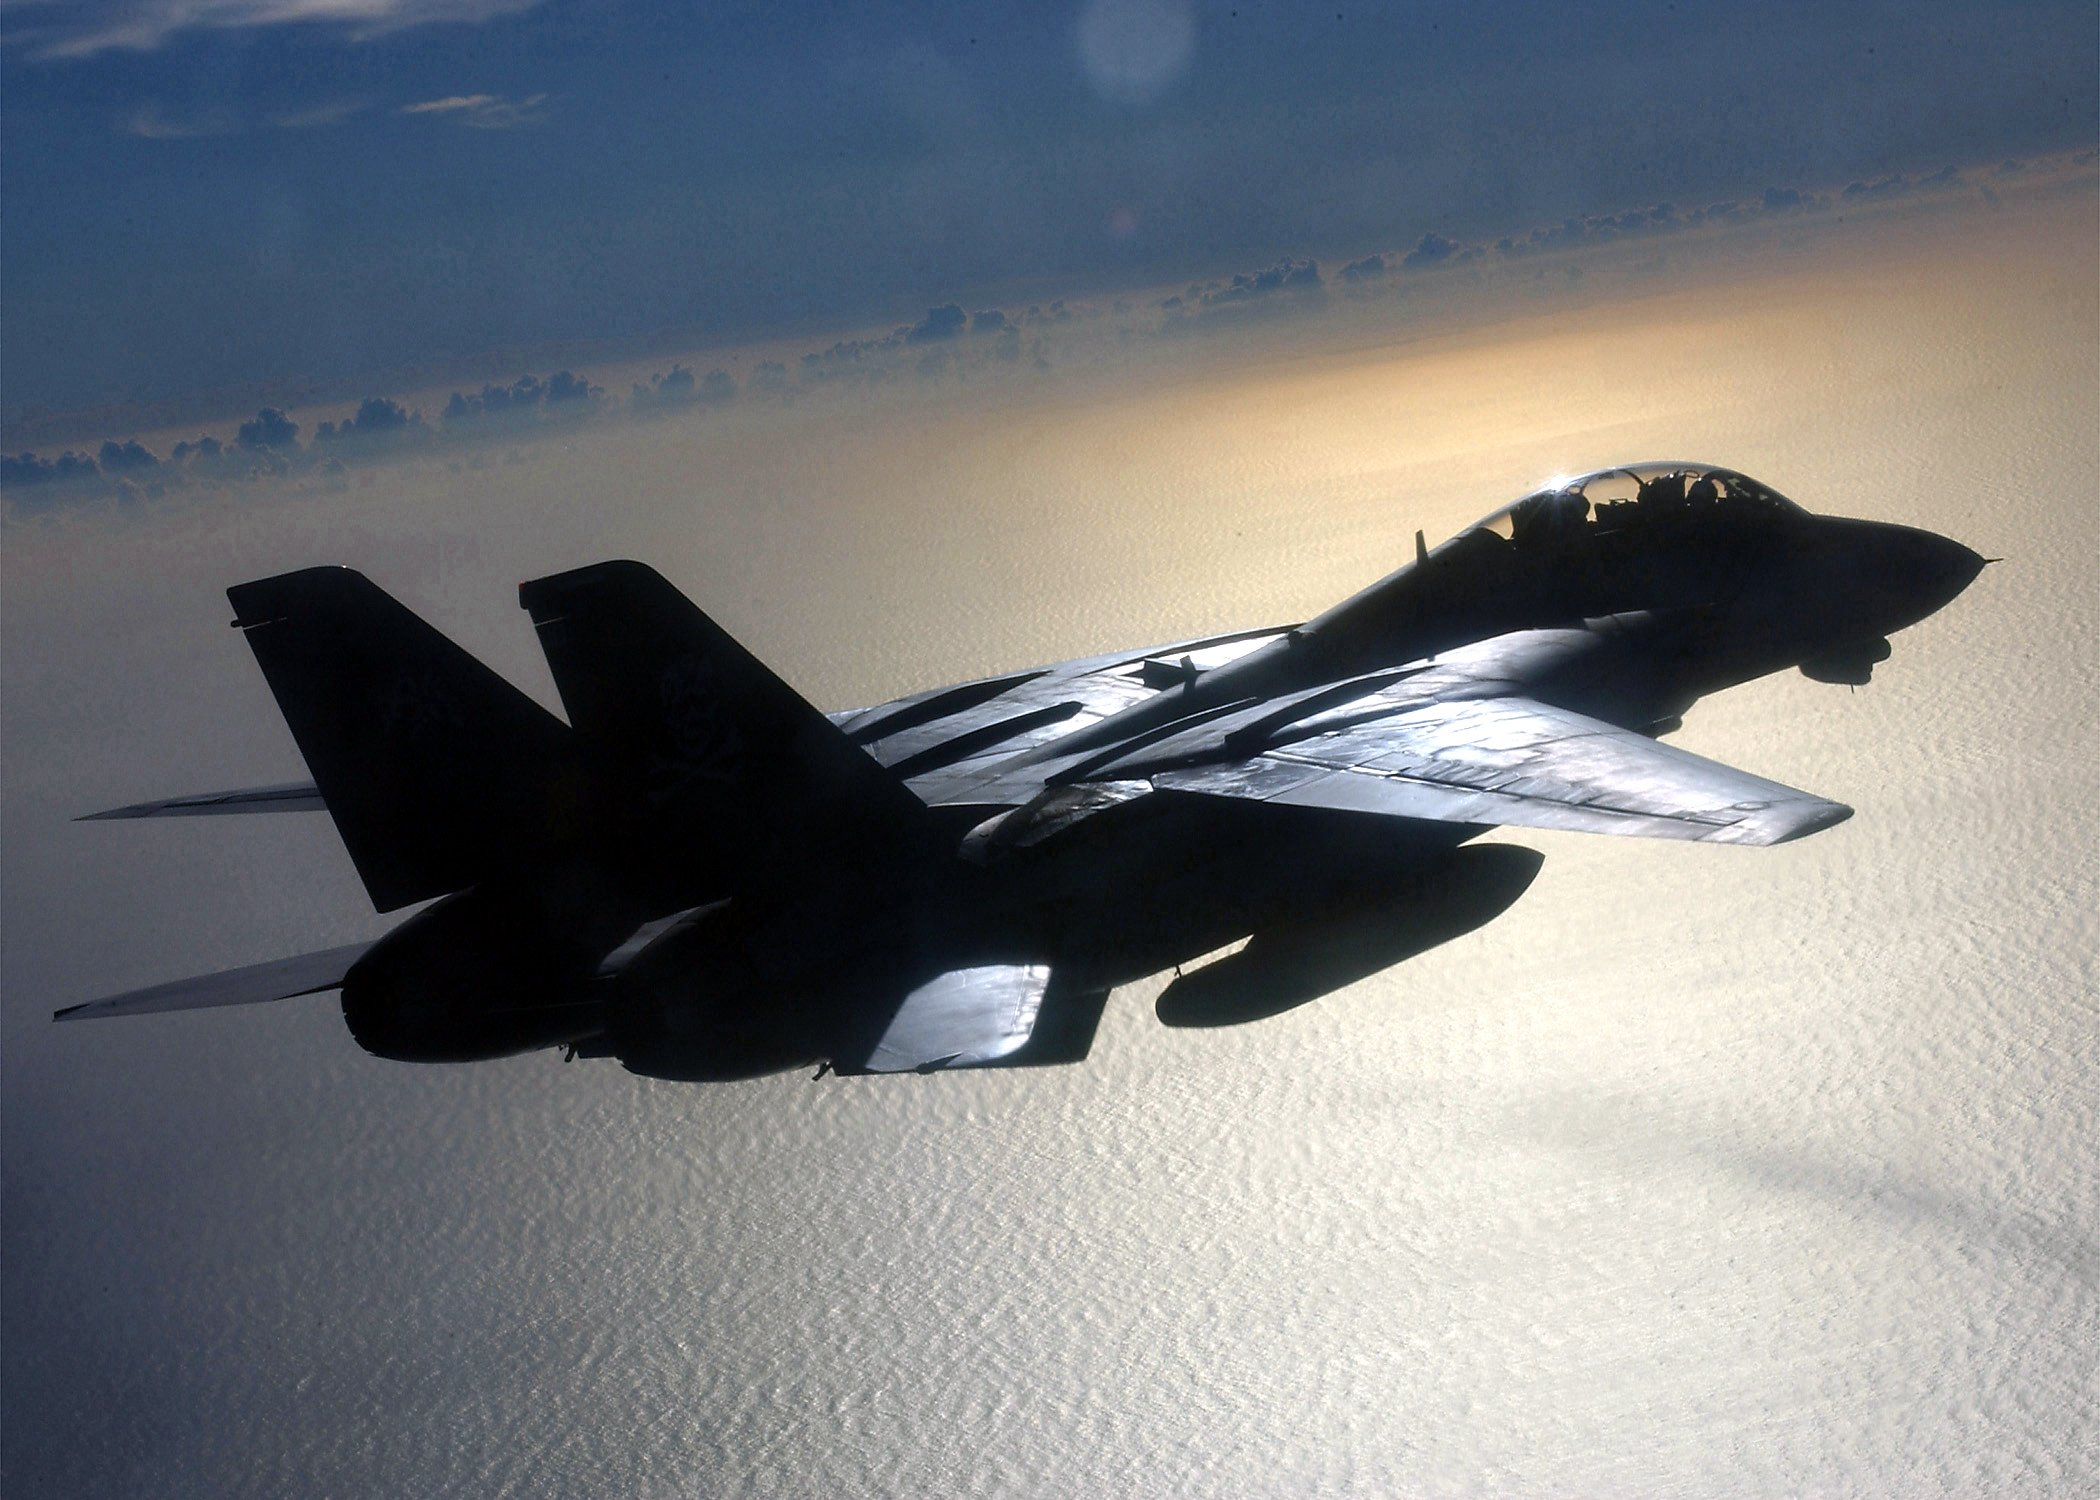 The first 'Top Gun' movie made the F-14 Tomcat famous with the general public and features in the sequel's trailers. This Tomcat was with VF-103 when photographed over the Mediterranean Sea. US Navy/Capt Dana Potts